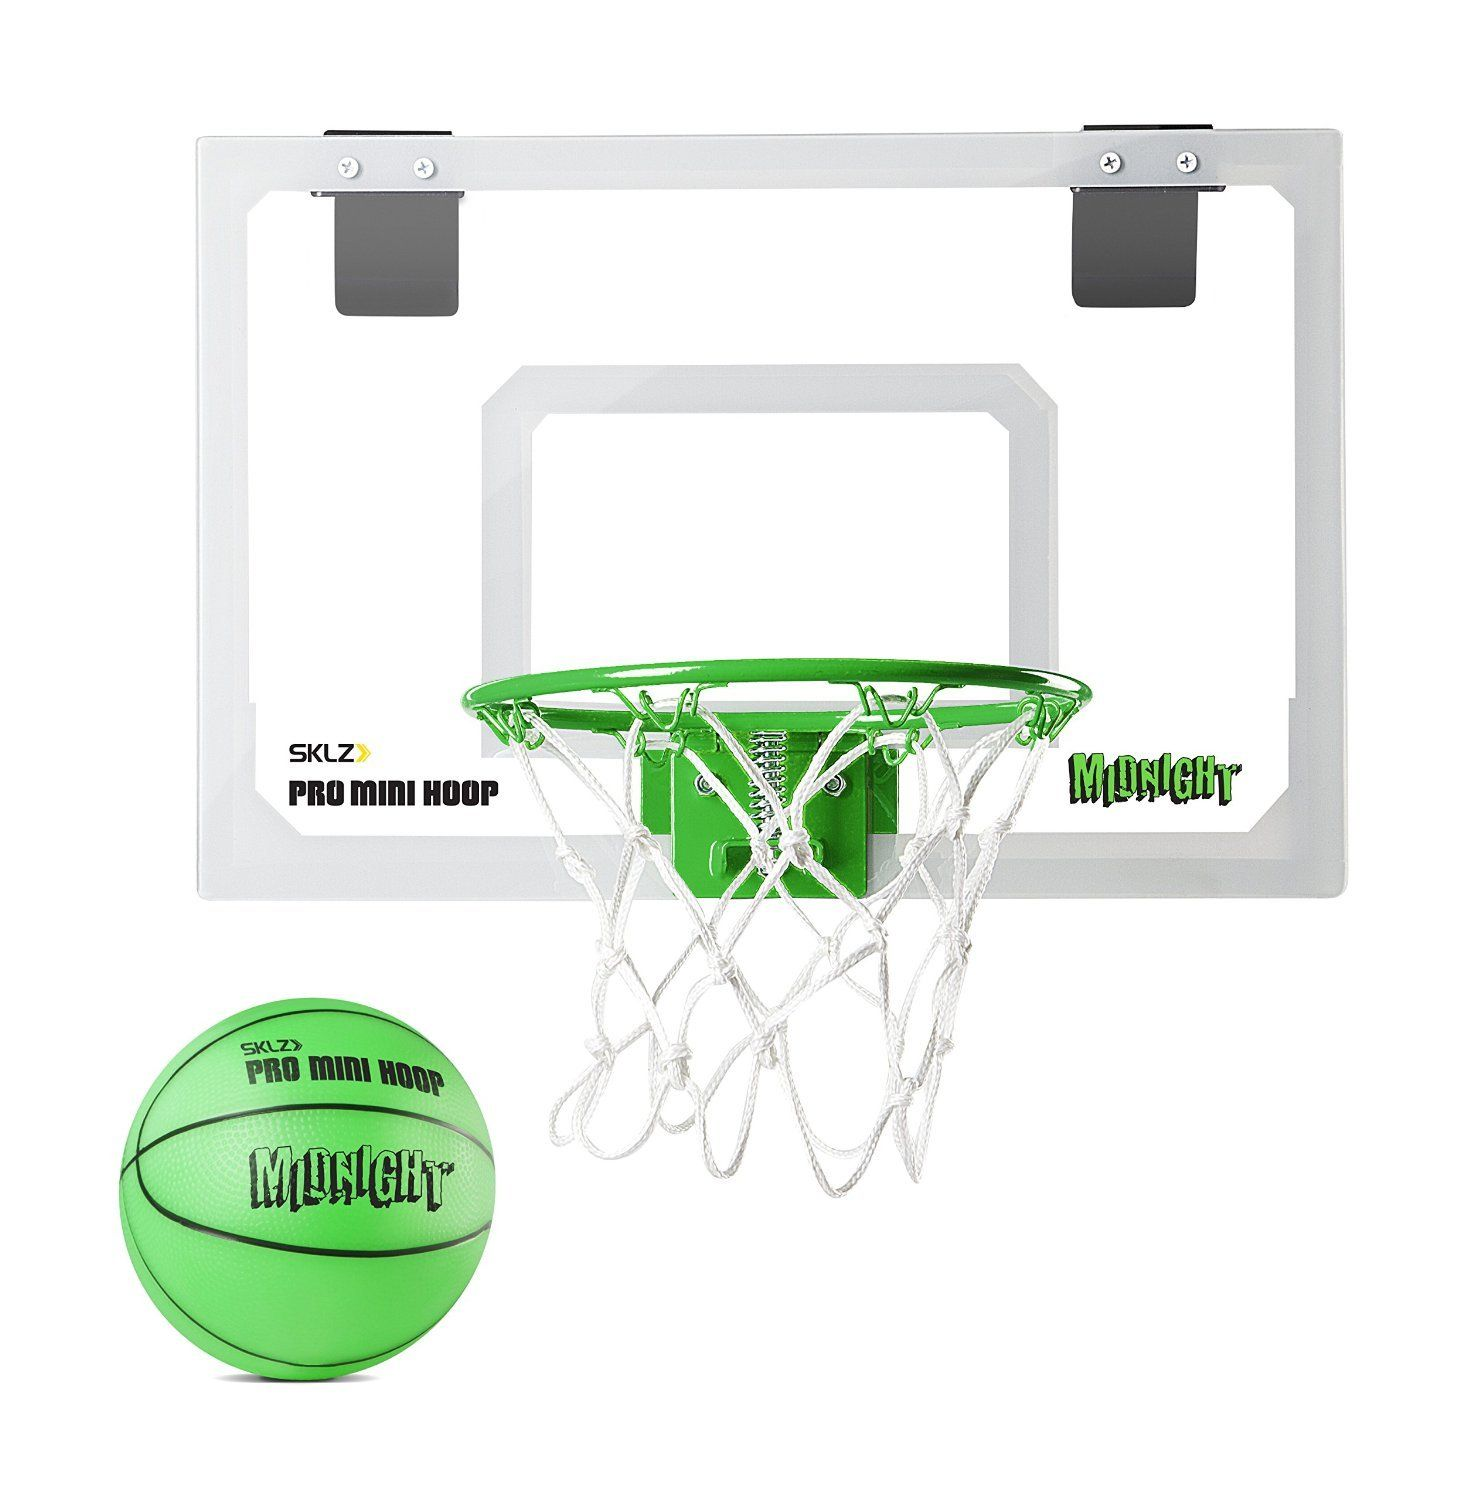 Best Gifts and Toys for 13 Year Old Boys | Birthdays | Pinterest ...